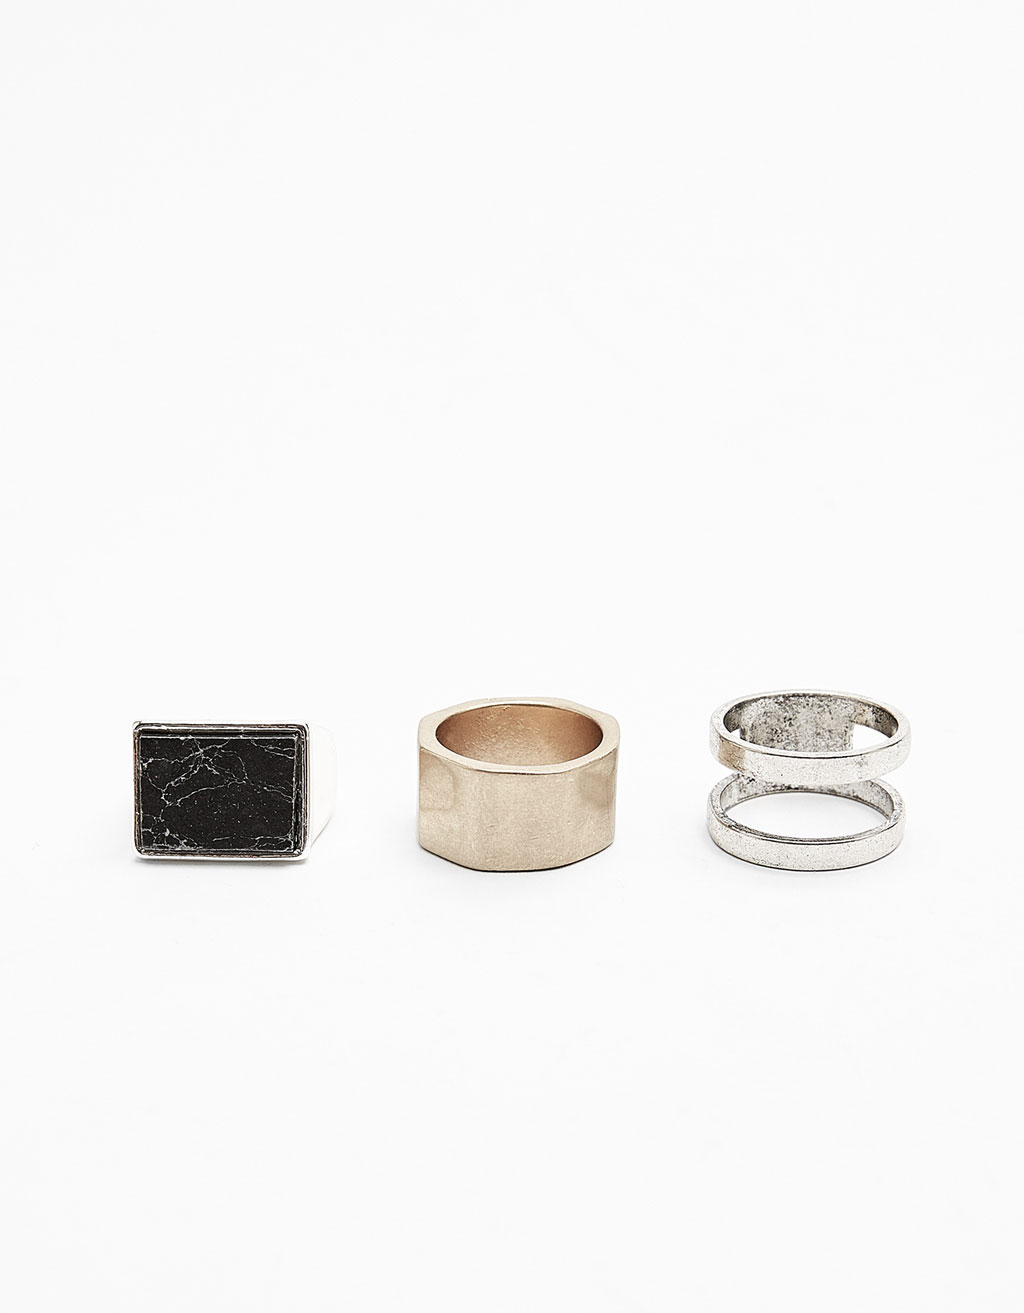 Set of stone and metal rings